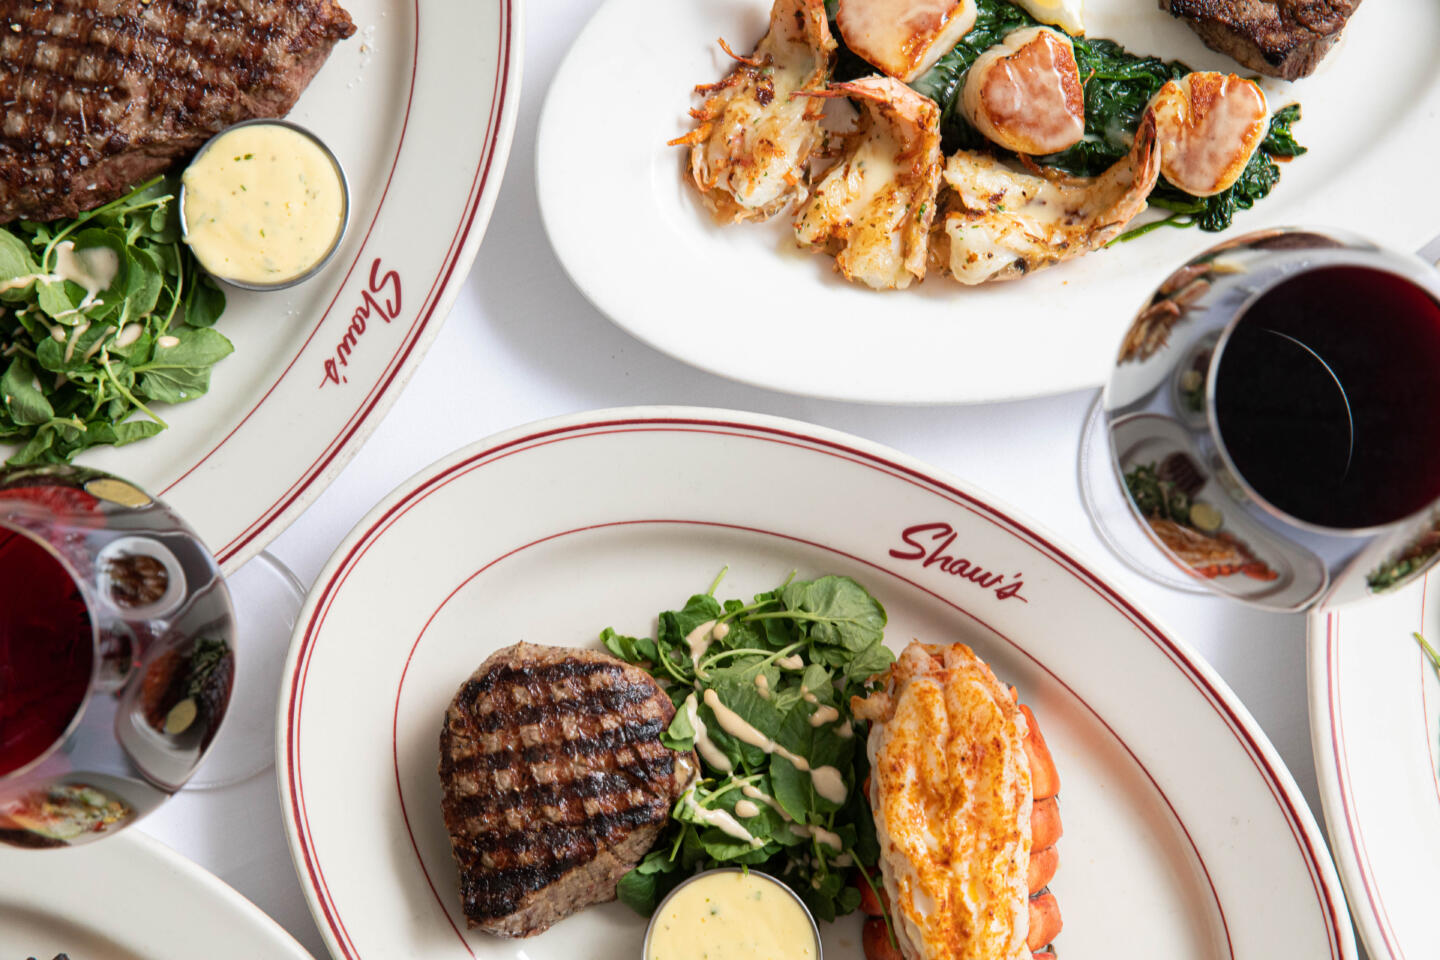 Shaw's steak and seafood